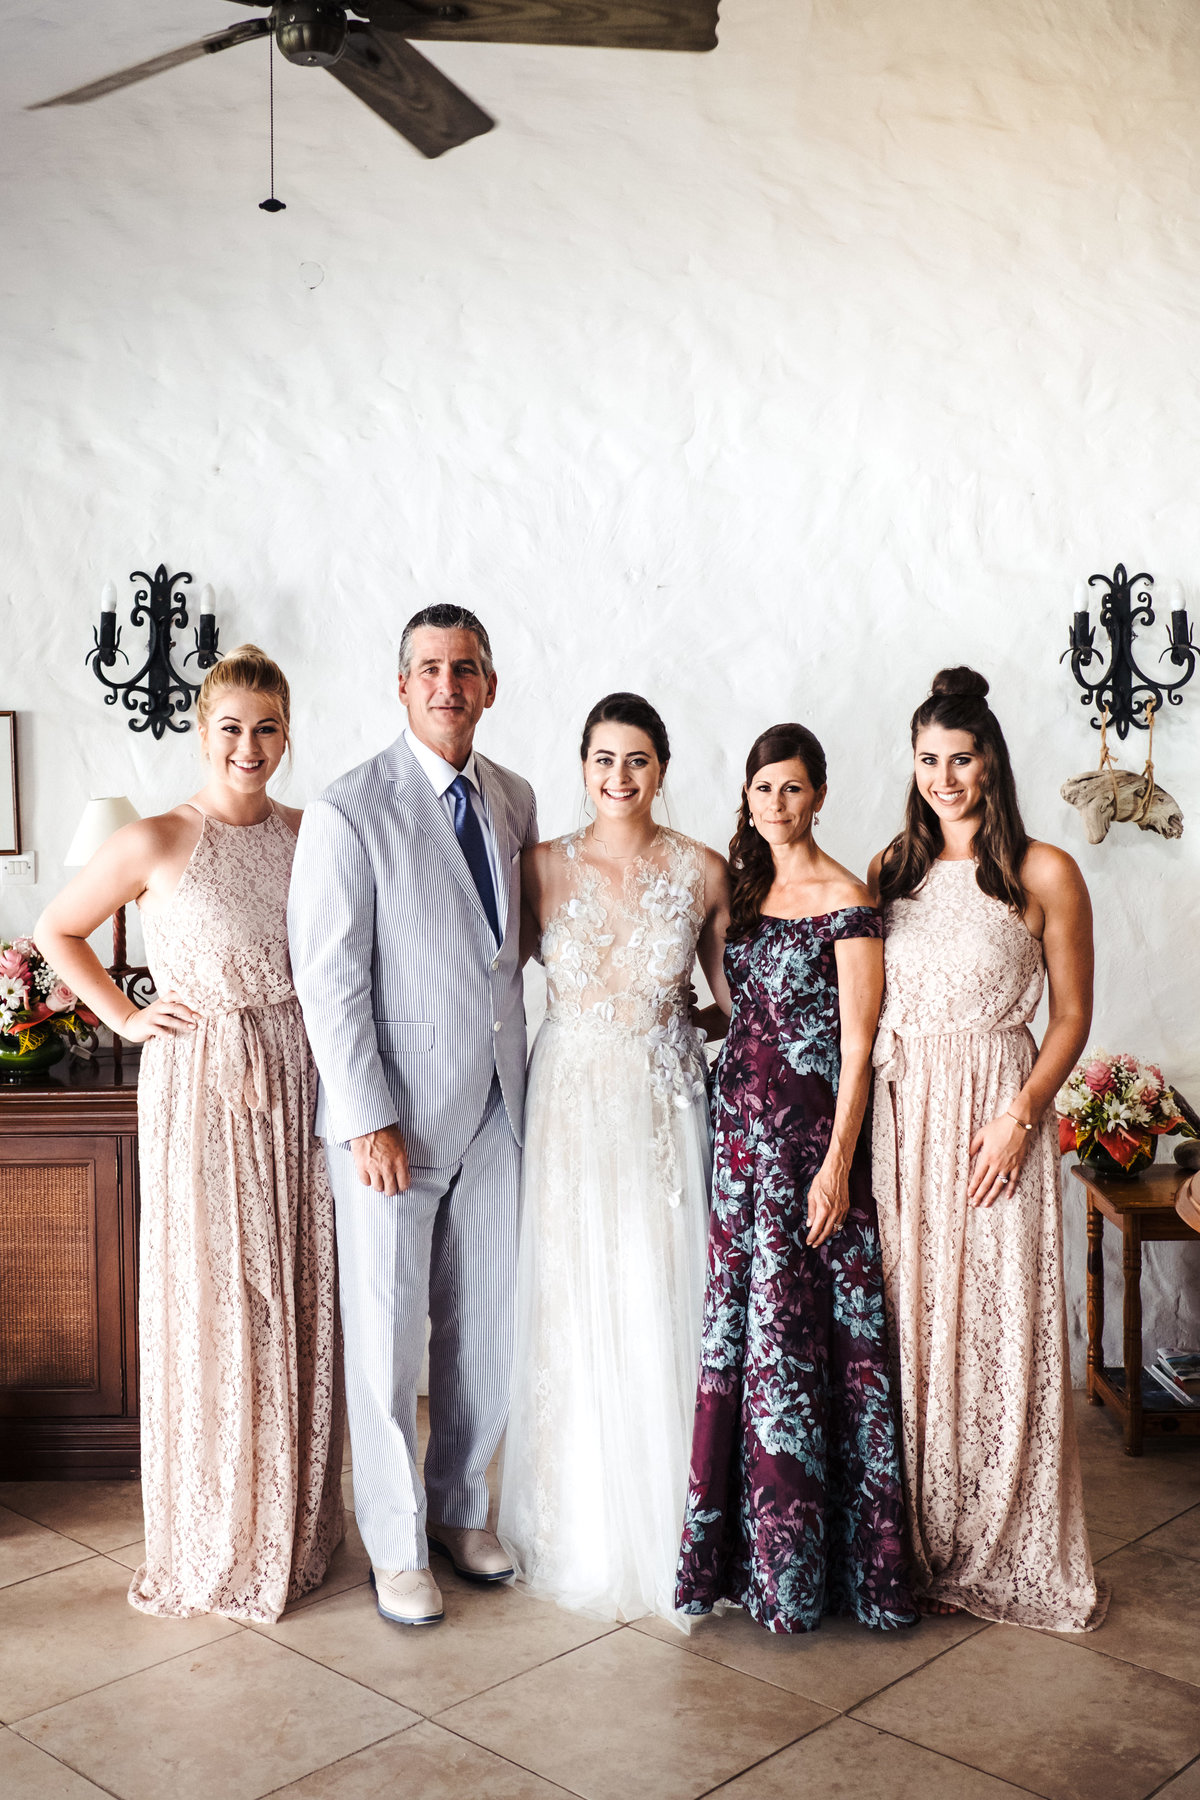 Cap Maison St Lucia Destination Wedding - 081